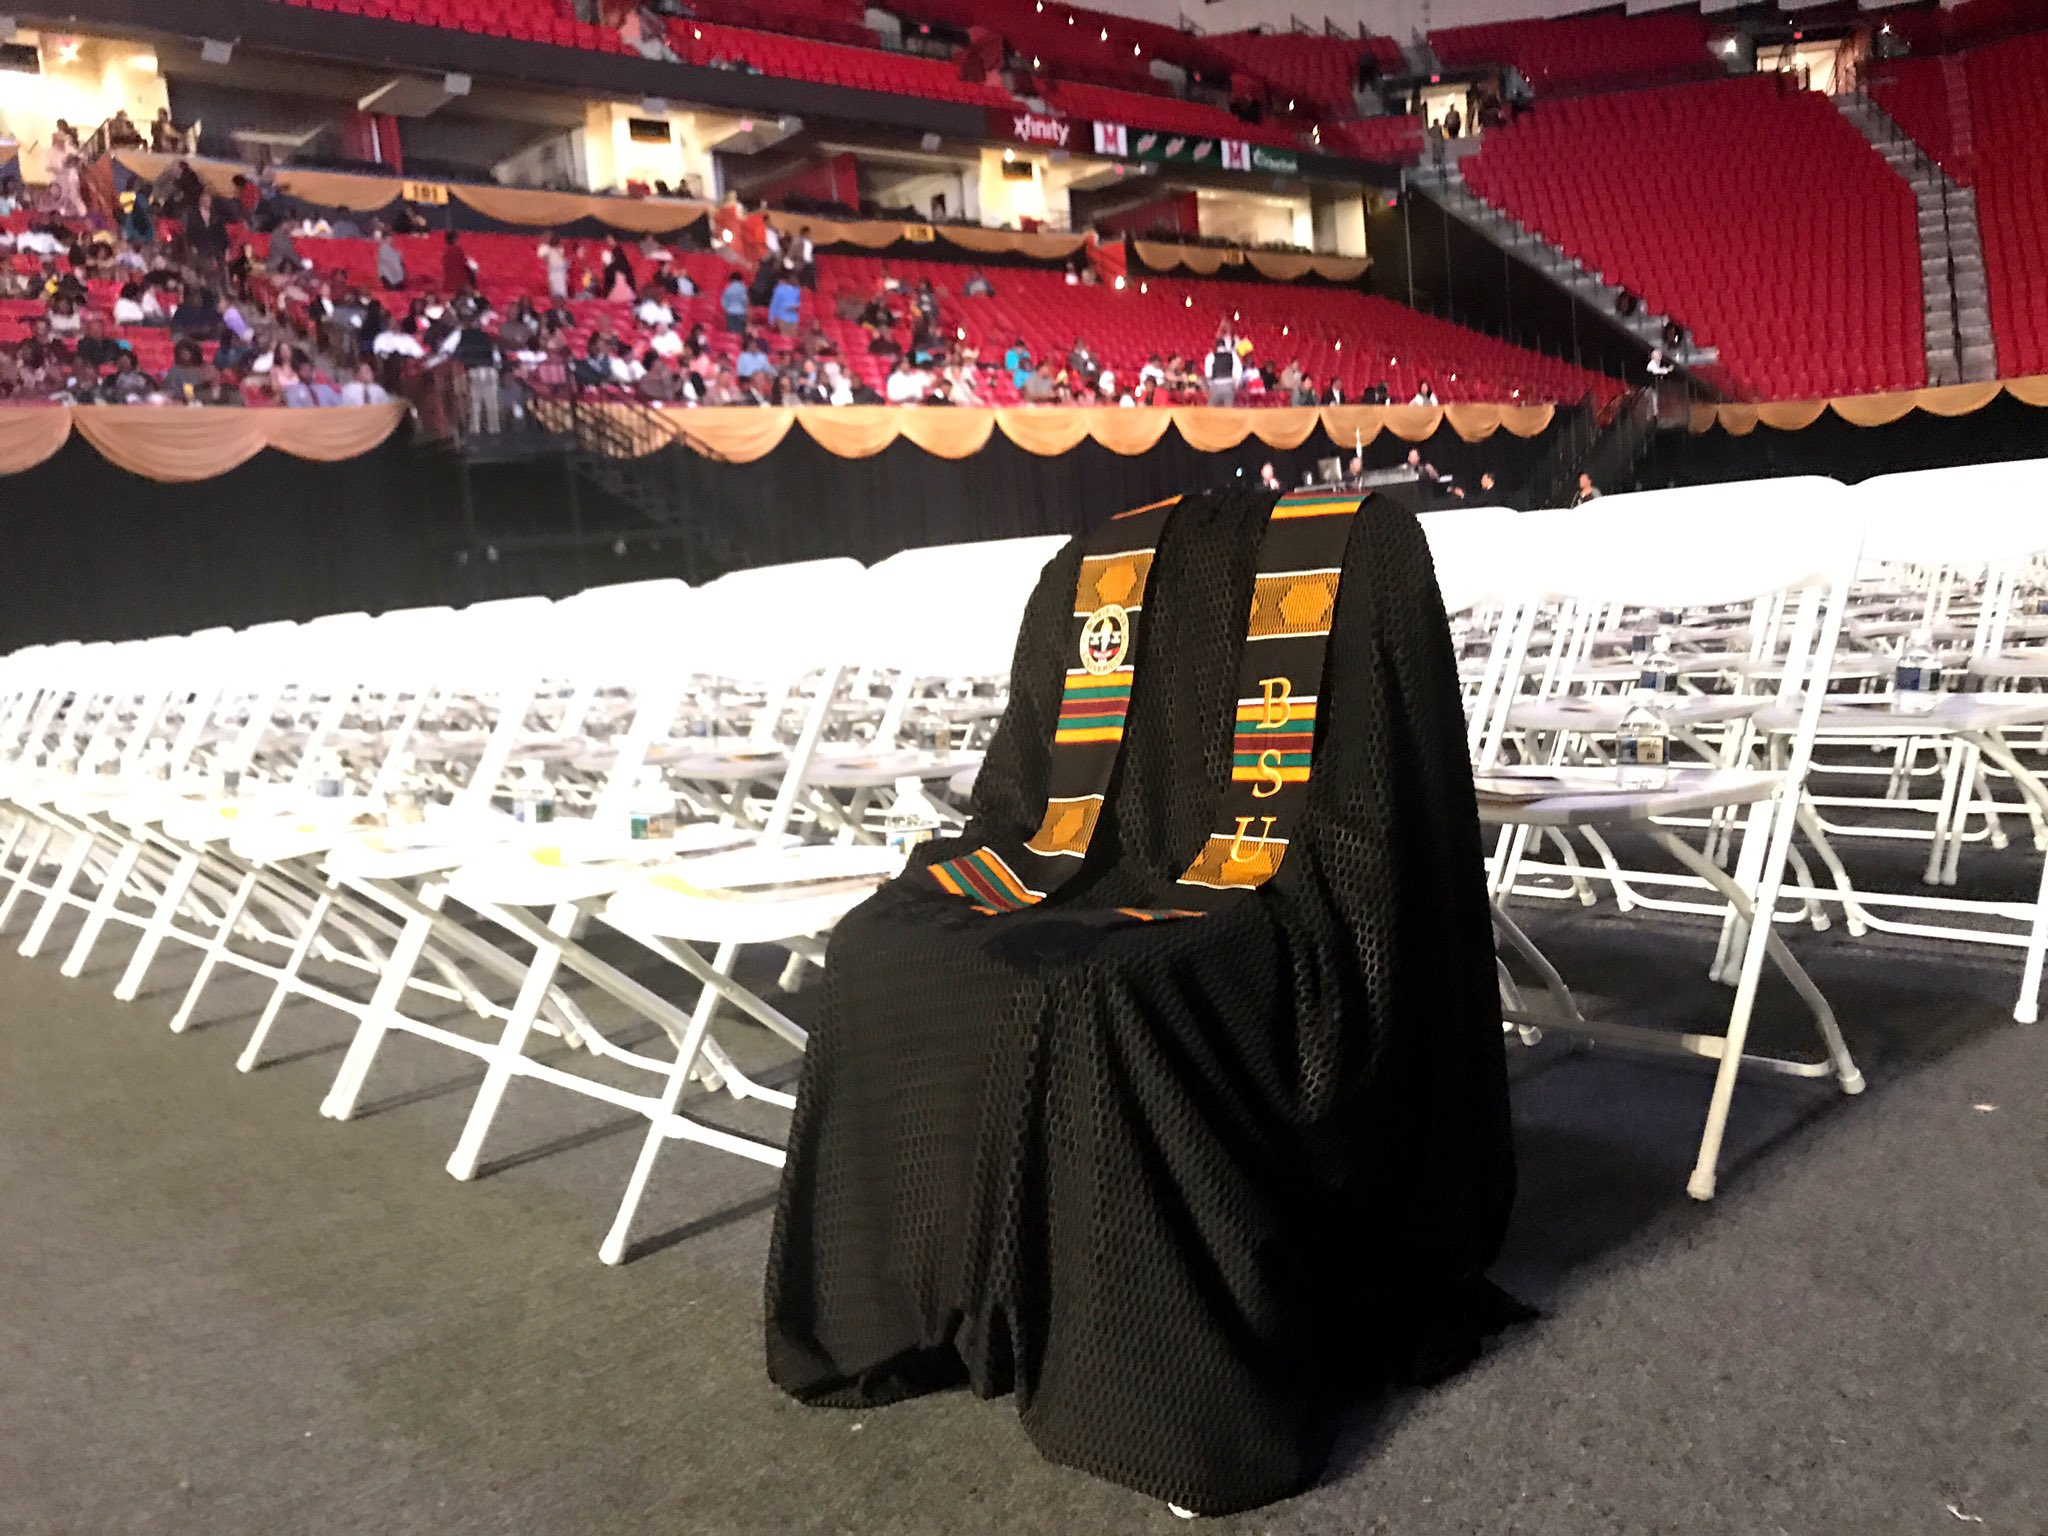 Neal Augenstein‏ at WTOP Radio in Washington, D.C. posted this photo on Twitter: @AugensteinWTOP -- Richard Collins III's graduation gown draped over front row chairs at Bowie State University ceremony. He was murdered Saturday.